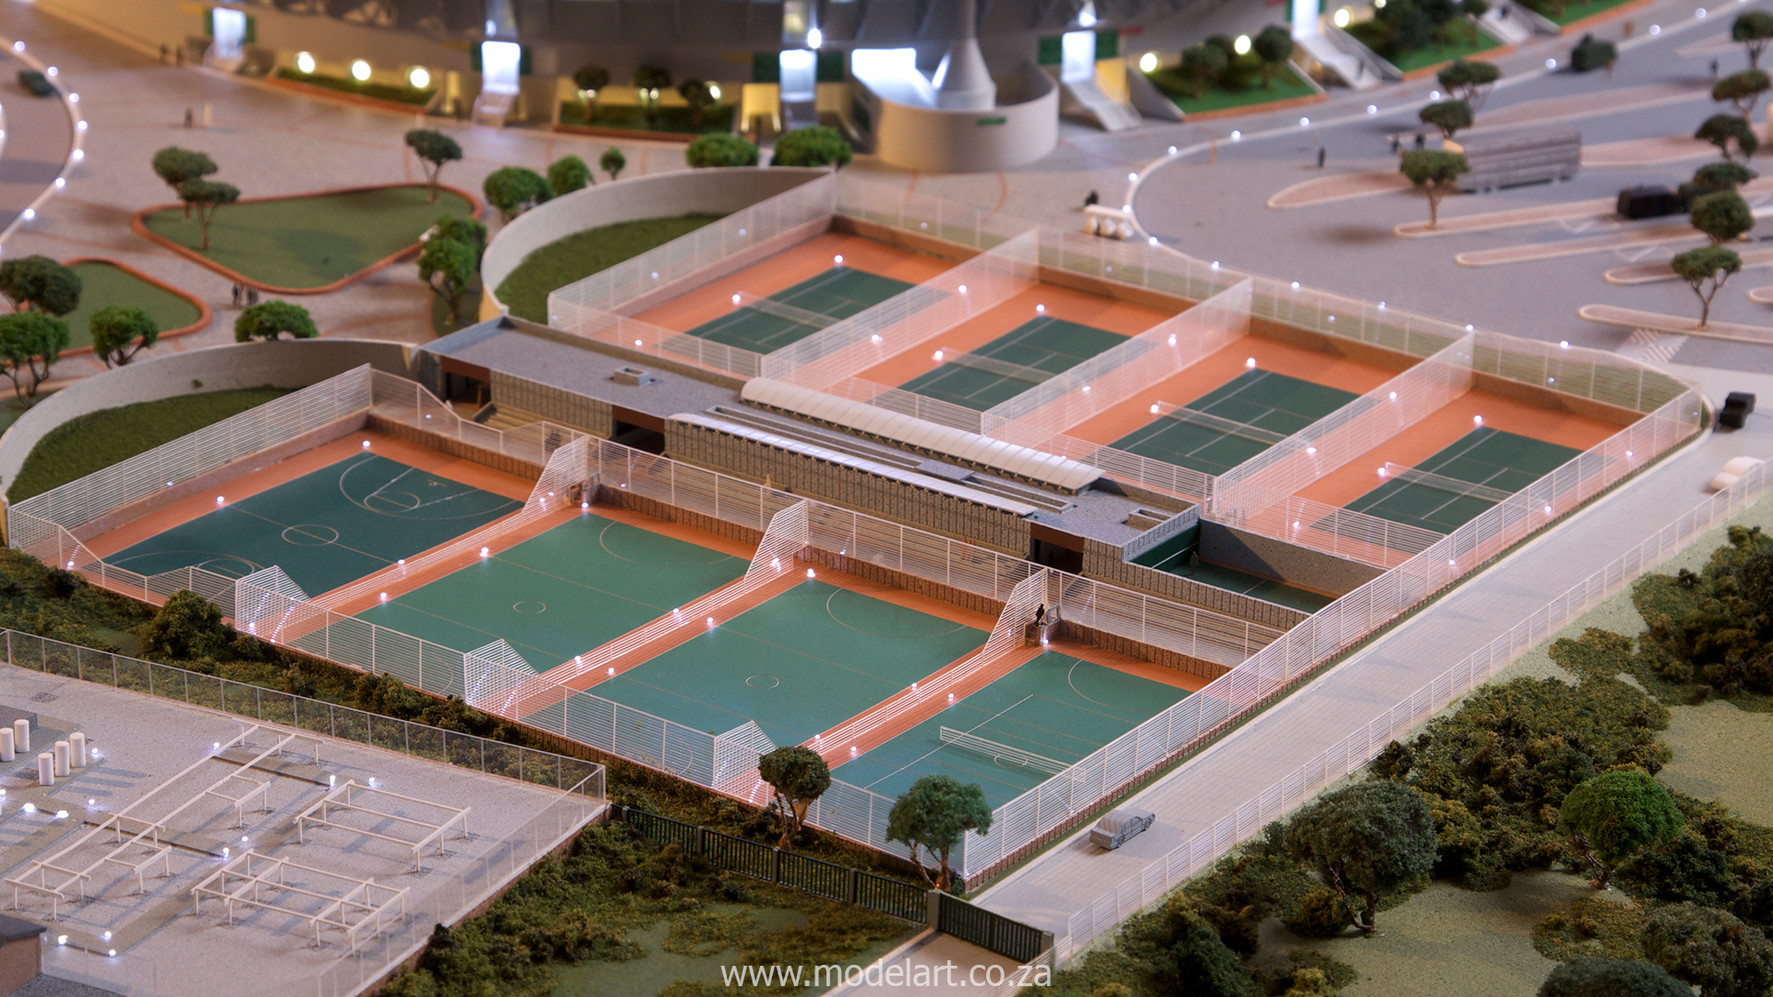 Architectural-Scale-Model-Sports Facilities-Royal Bafokeng Stadium-6